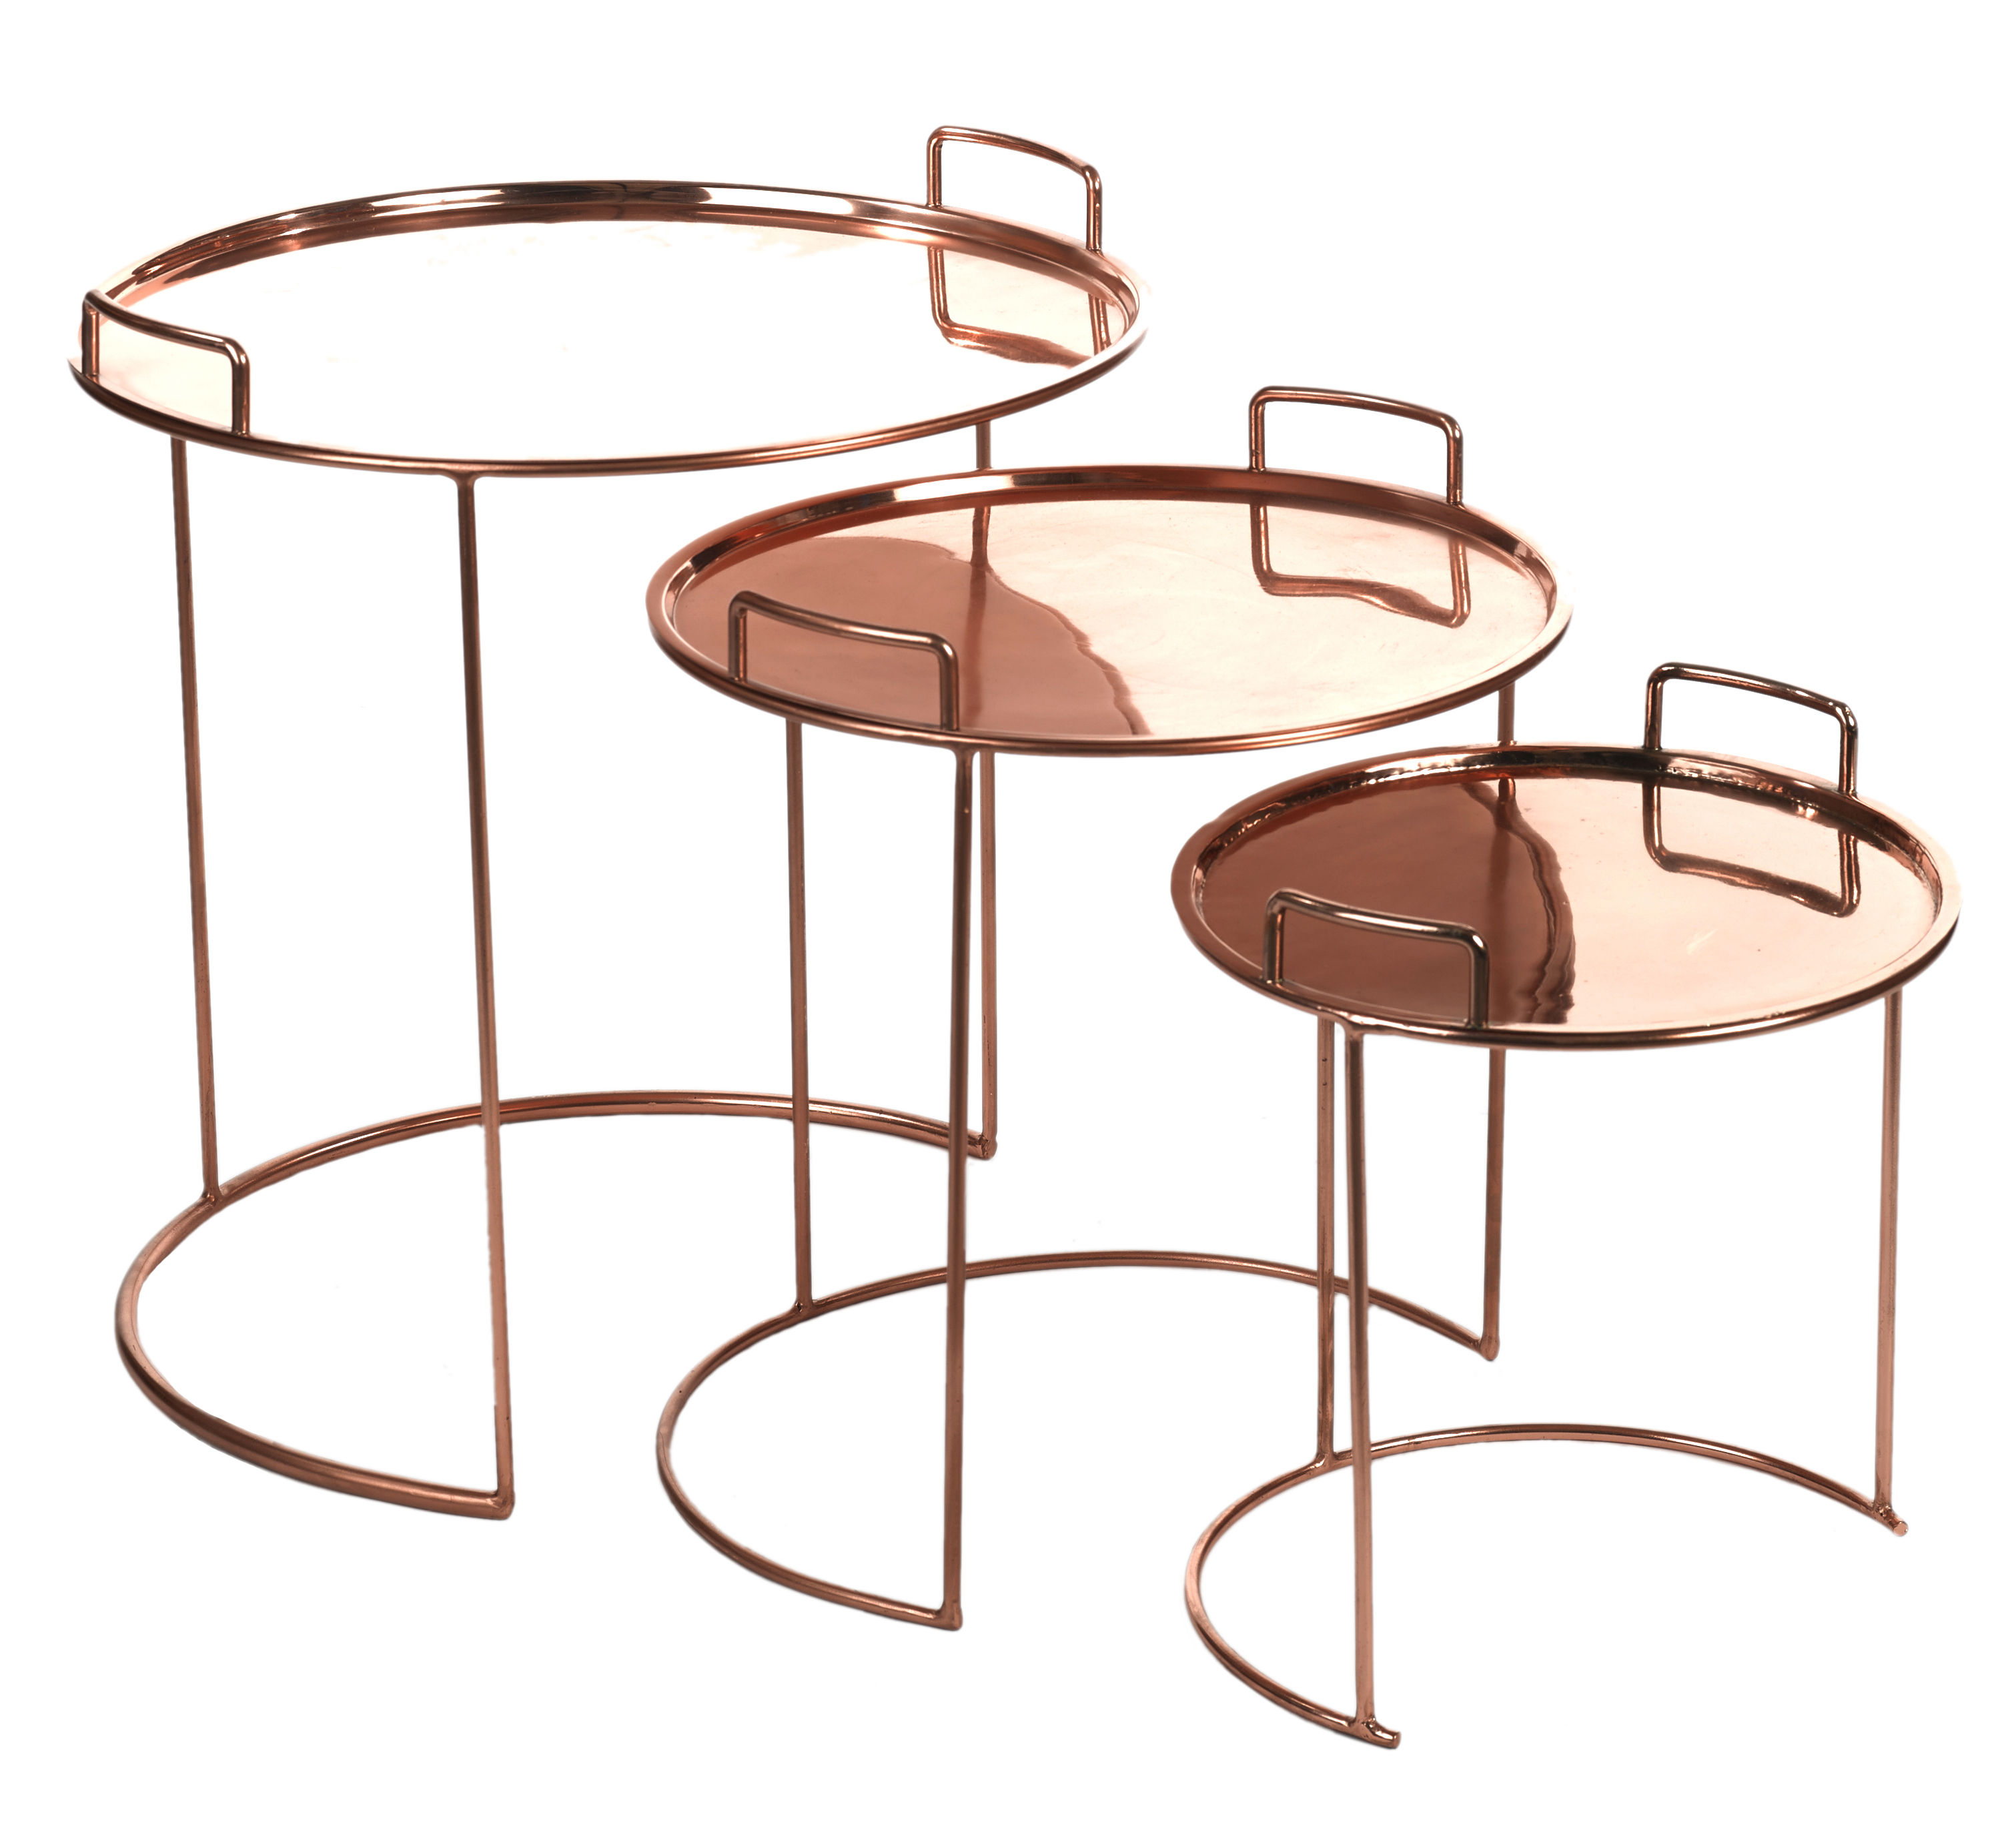 tray round nested tables 3 pieces stackable copper by pols potten. Black Bedroom Furniture Sets. Home Design Ideas